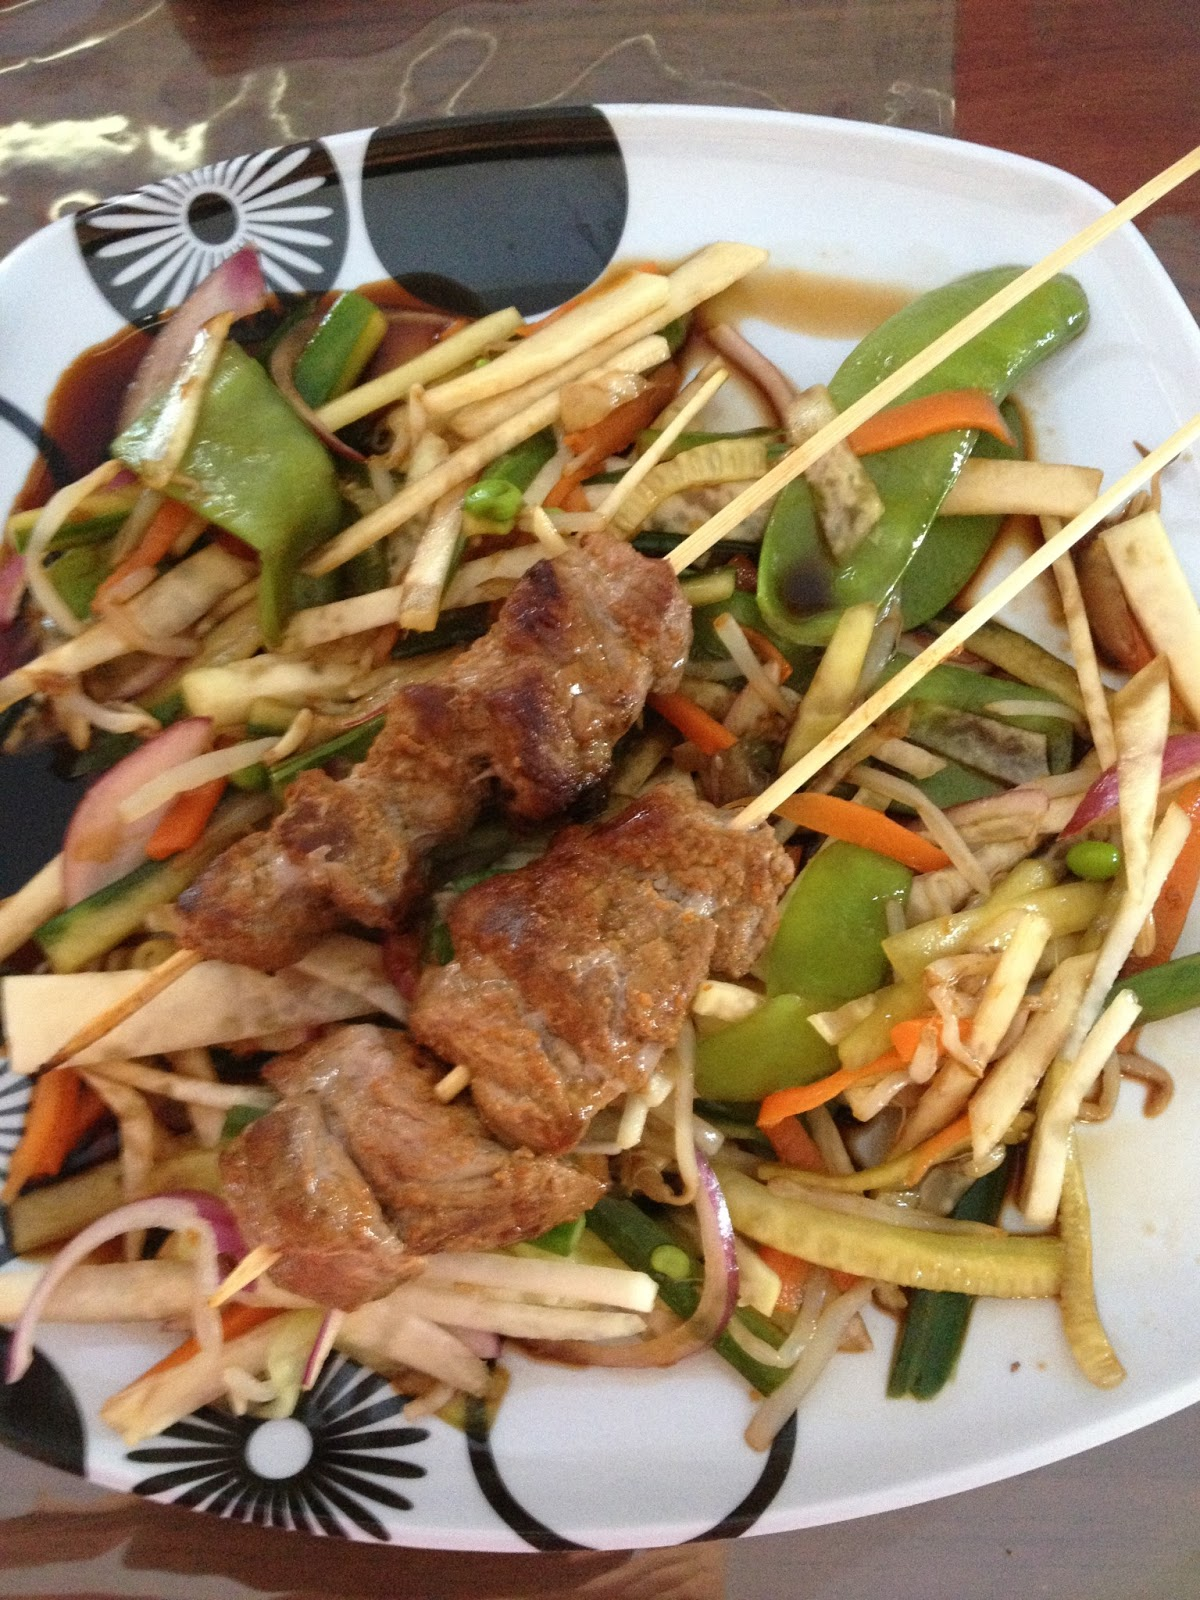 ... skewers with spicy vietnamese sirloin skewers with spicy carrot salad